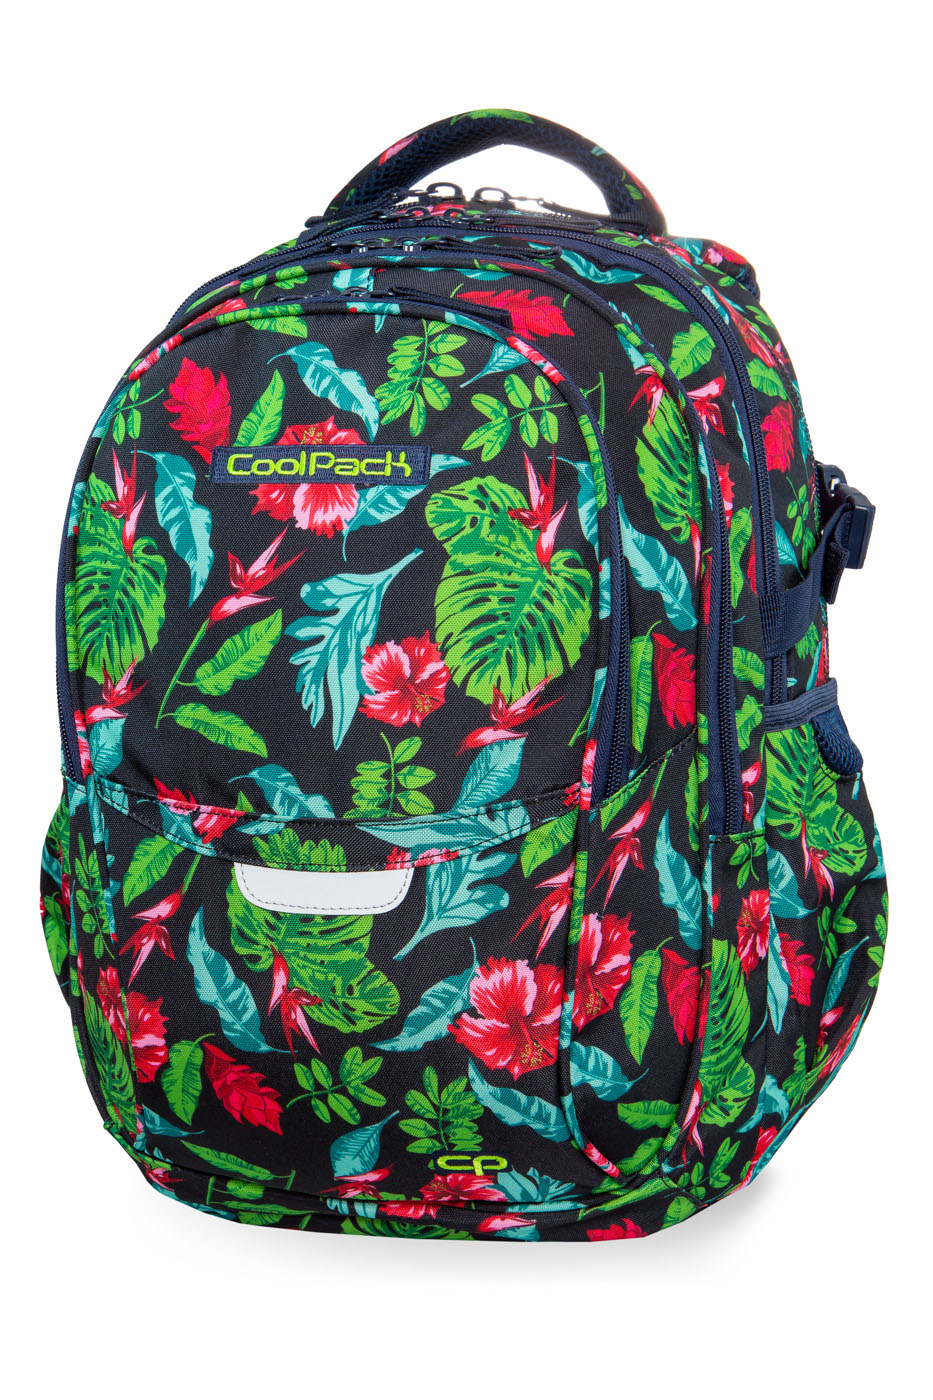 Coolpack   factor  rygsæk   candy jungle